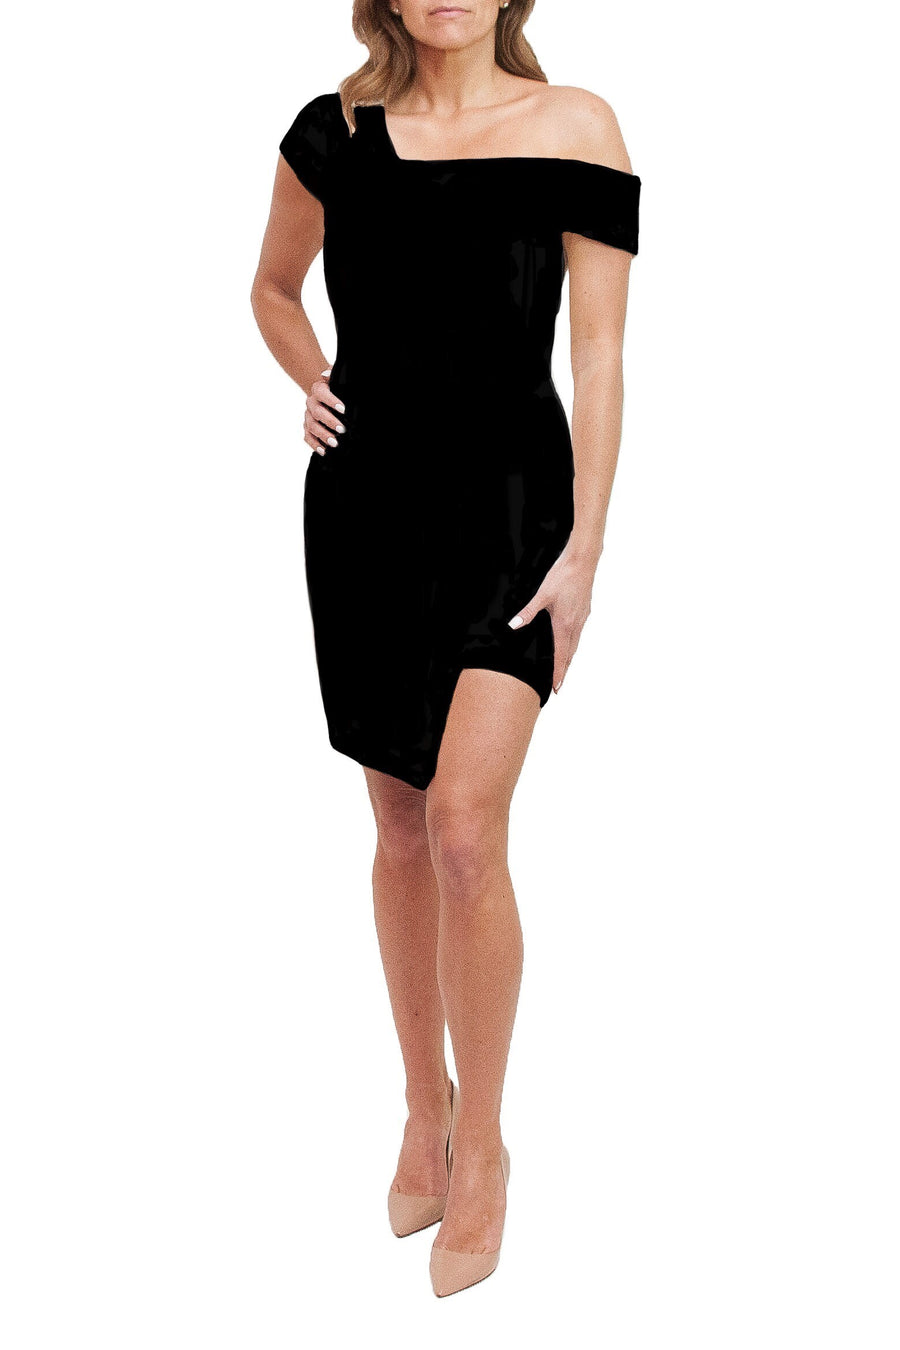 Jessica Stretch Black Dress